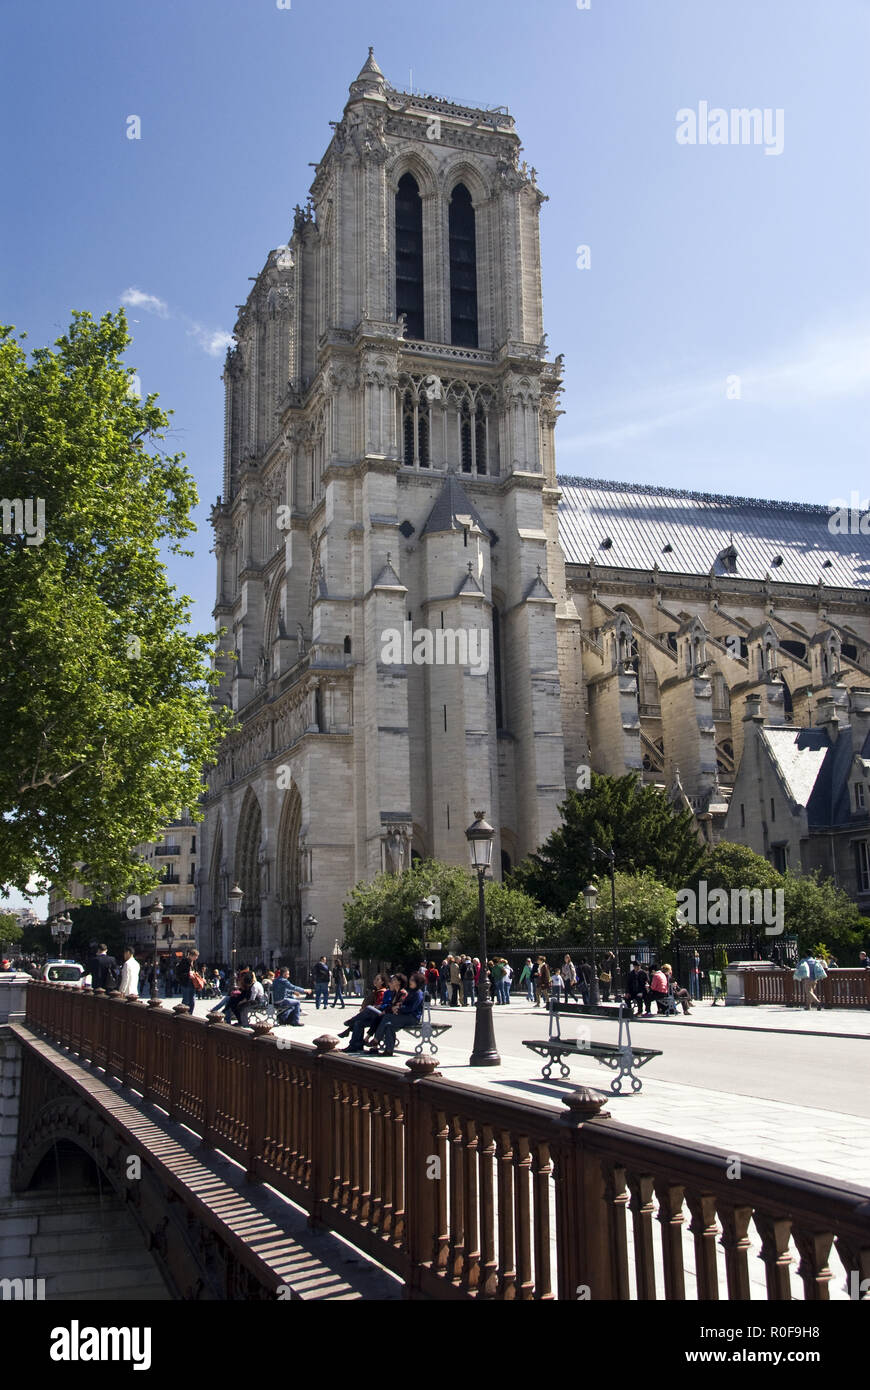 Tourists walk over the Pont au Double, which crosses the Seine river, to Notre Dame cathedral, in Paris, France. - Stock Image